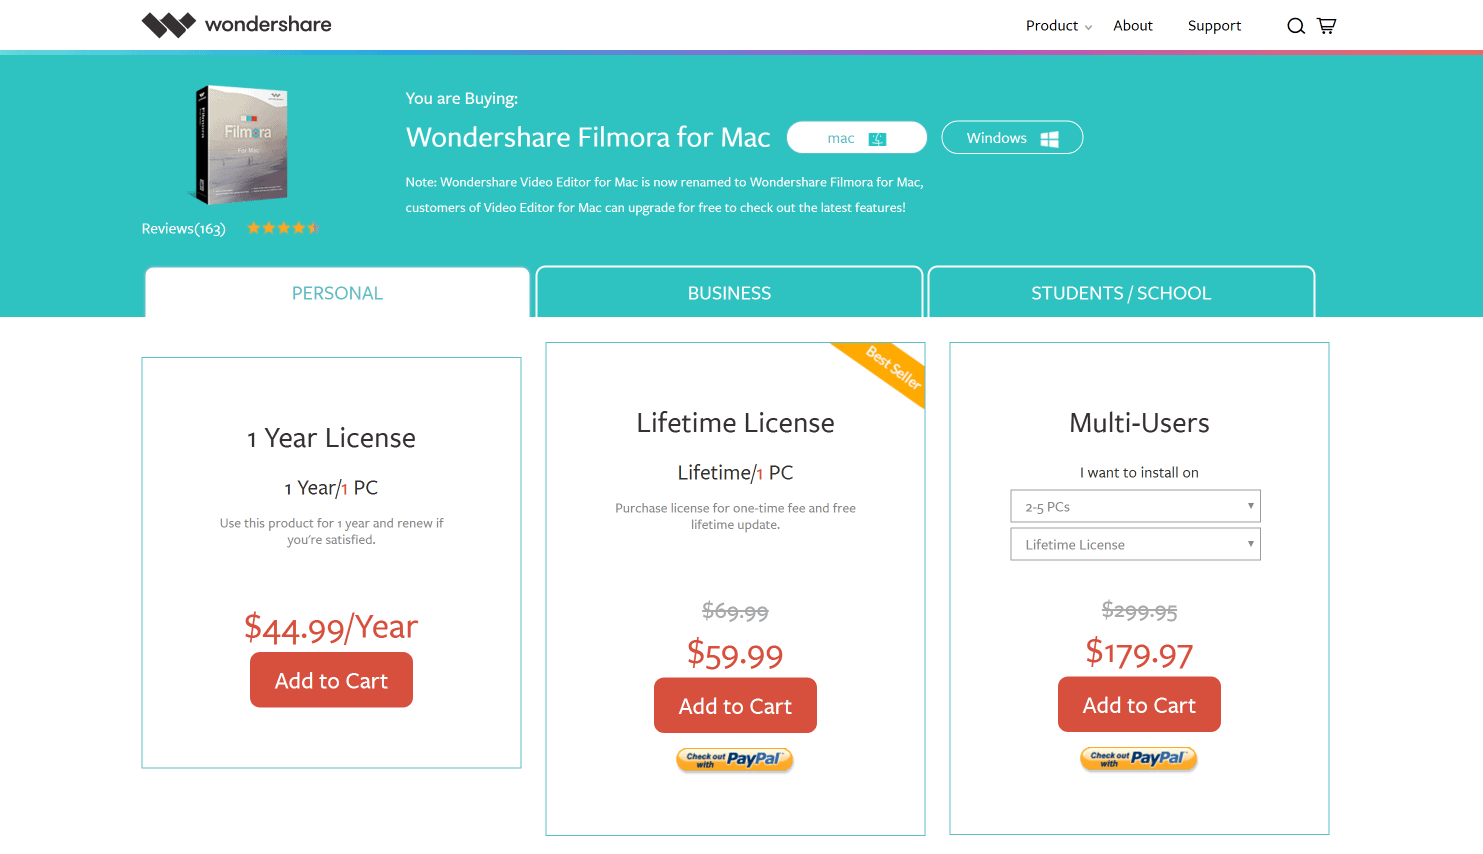 Wondershare Filmora for Mac Wondershare official online shop